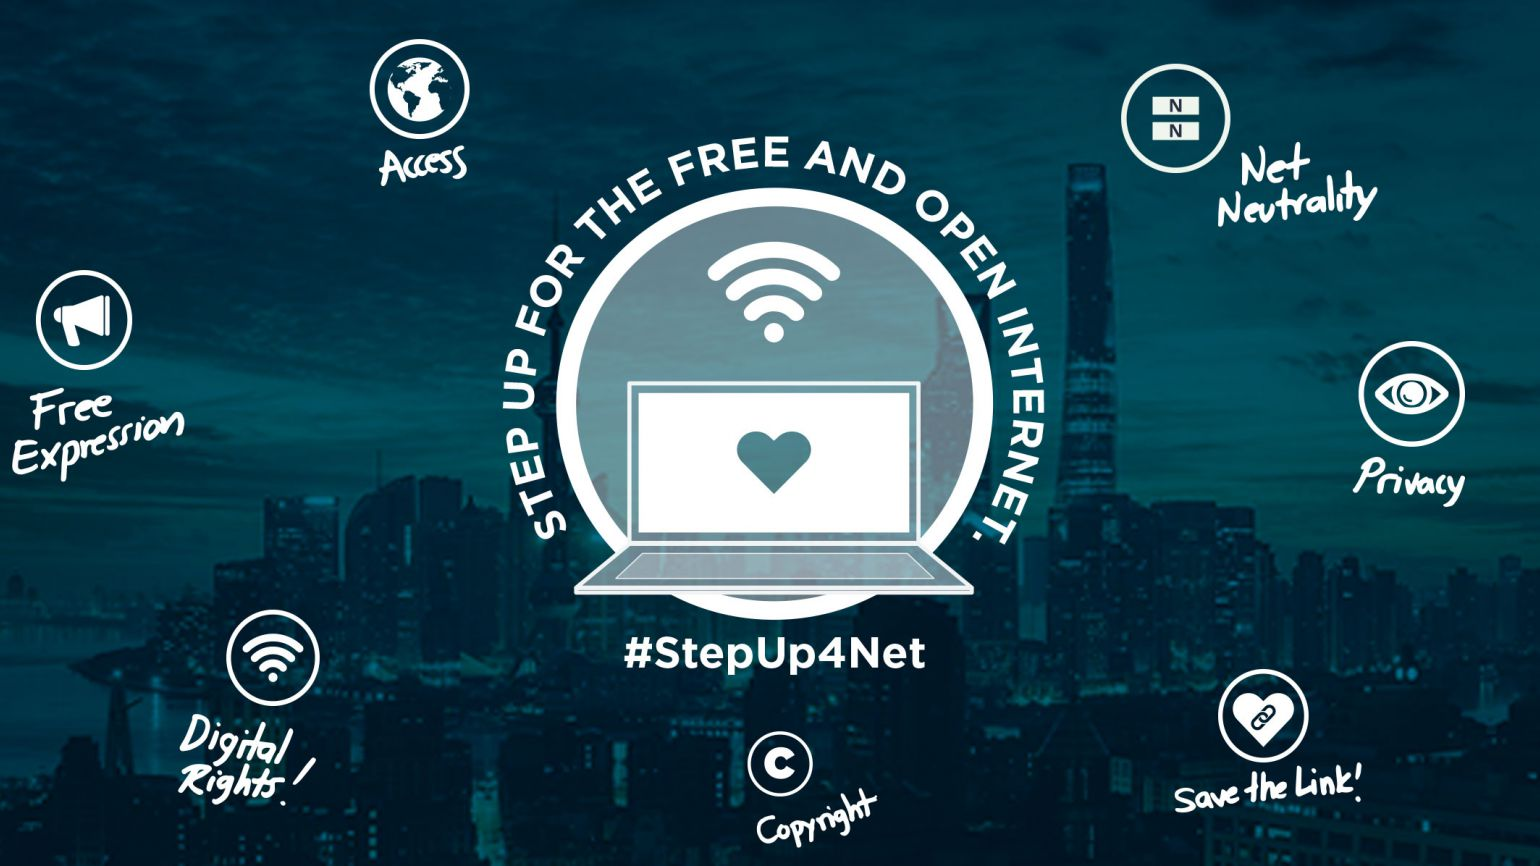 Step up for the free and open internet